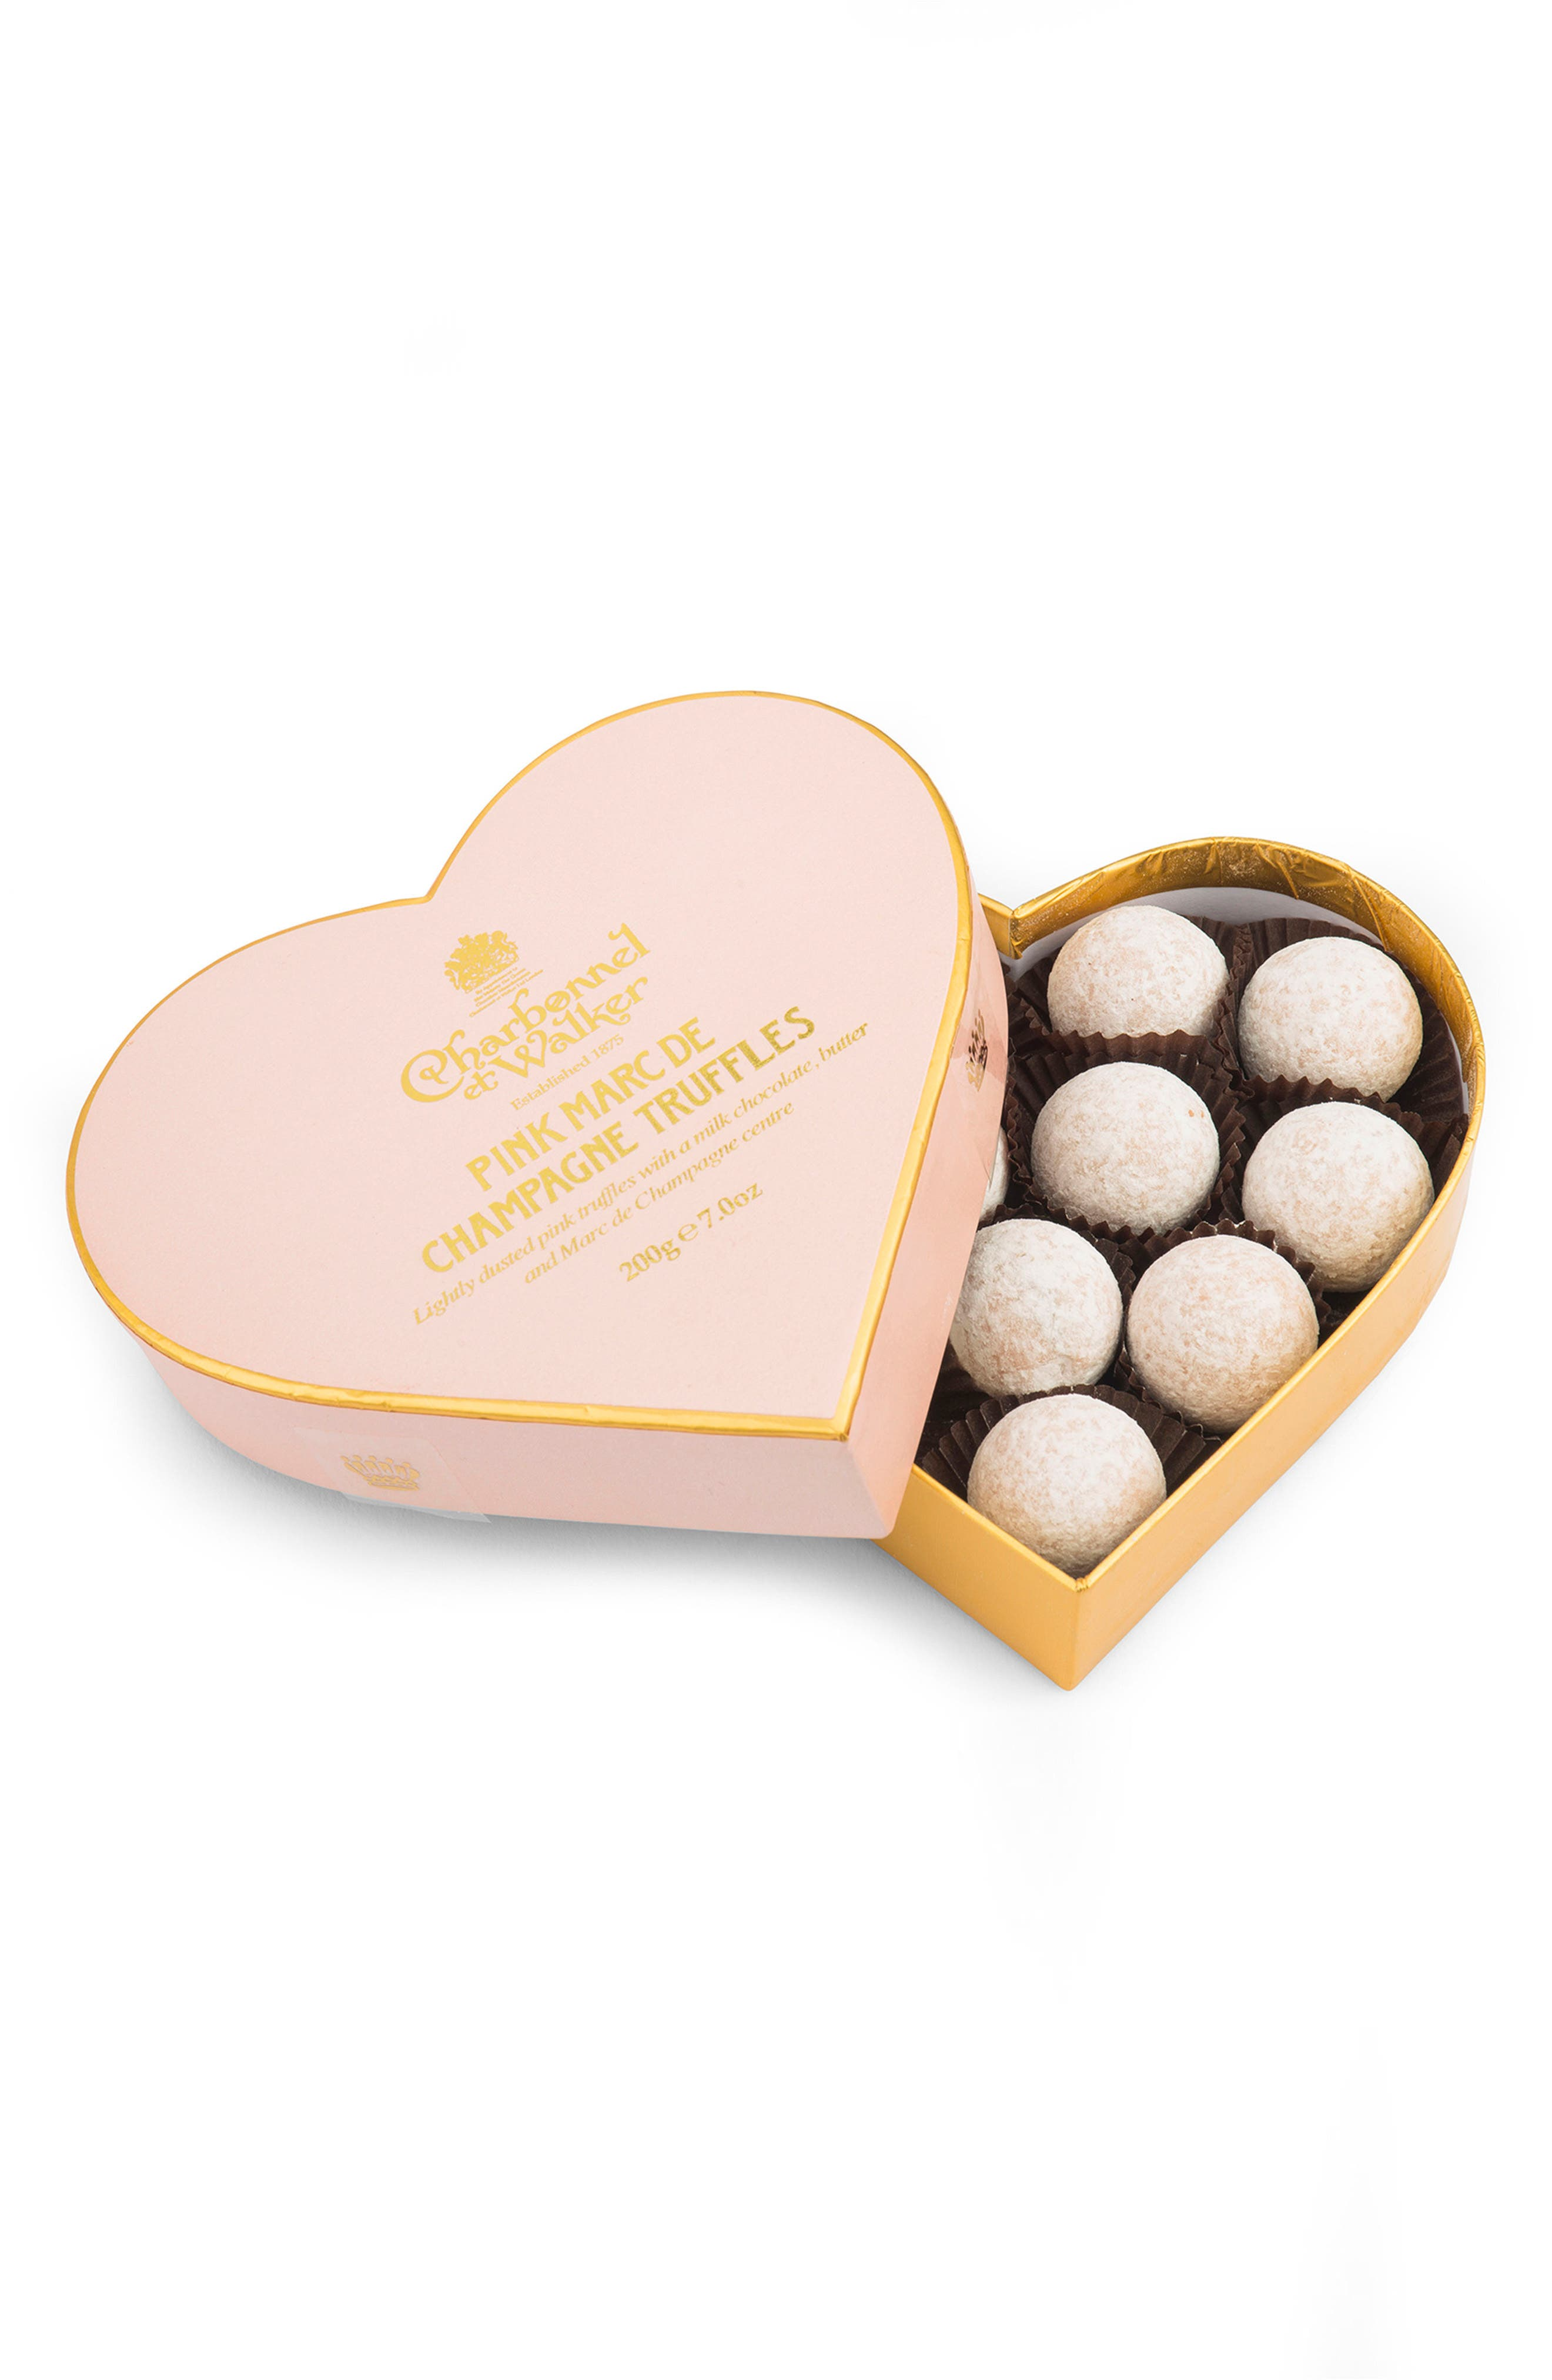 CHARBONNEL ET WALKER Chocolate Truffles in Heart Shaped